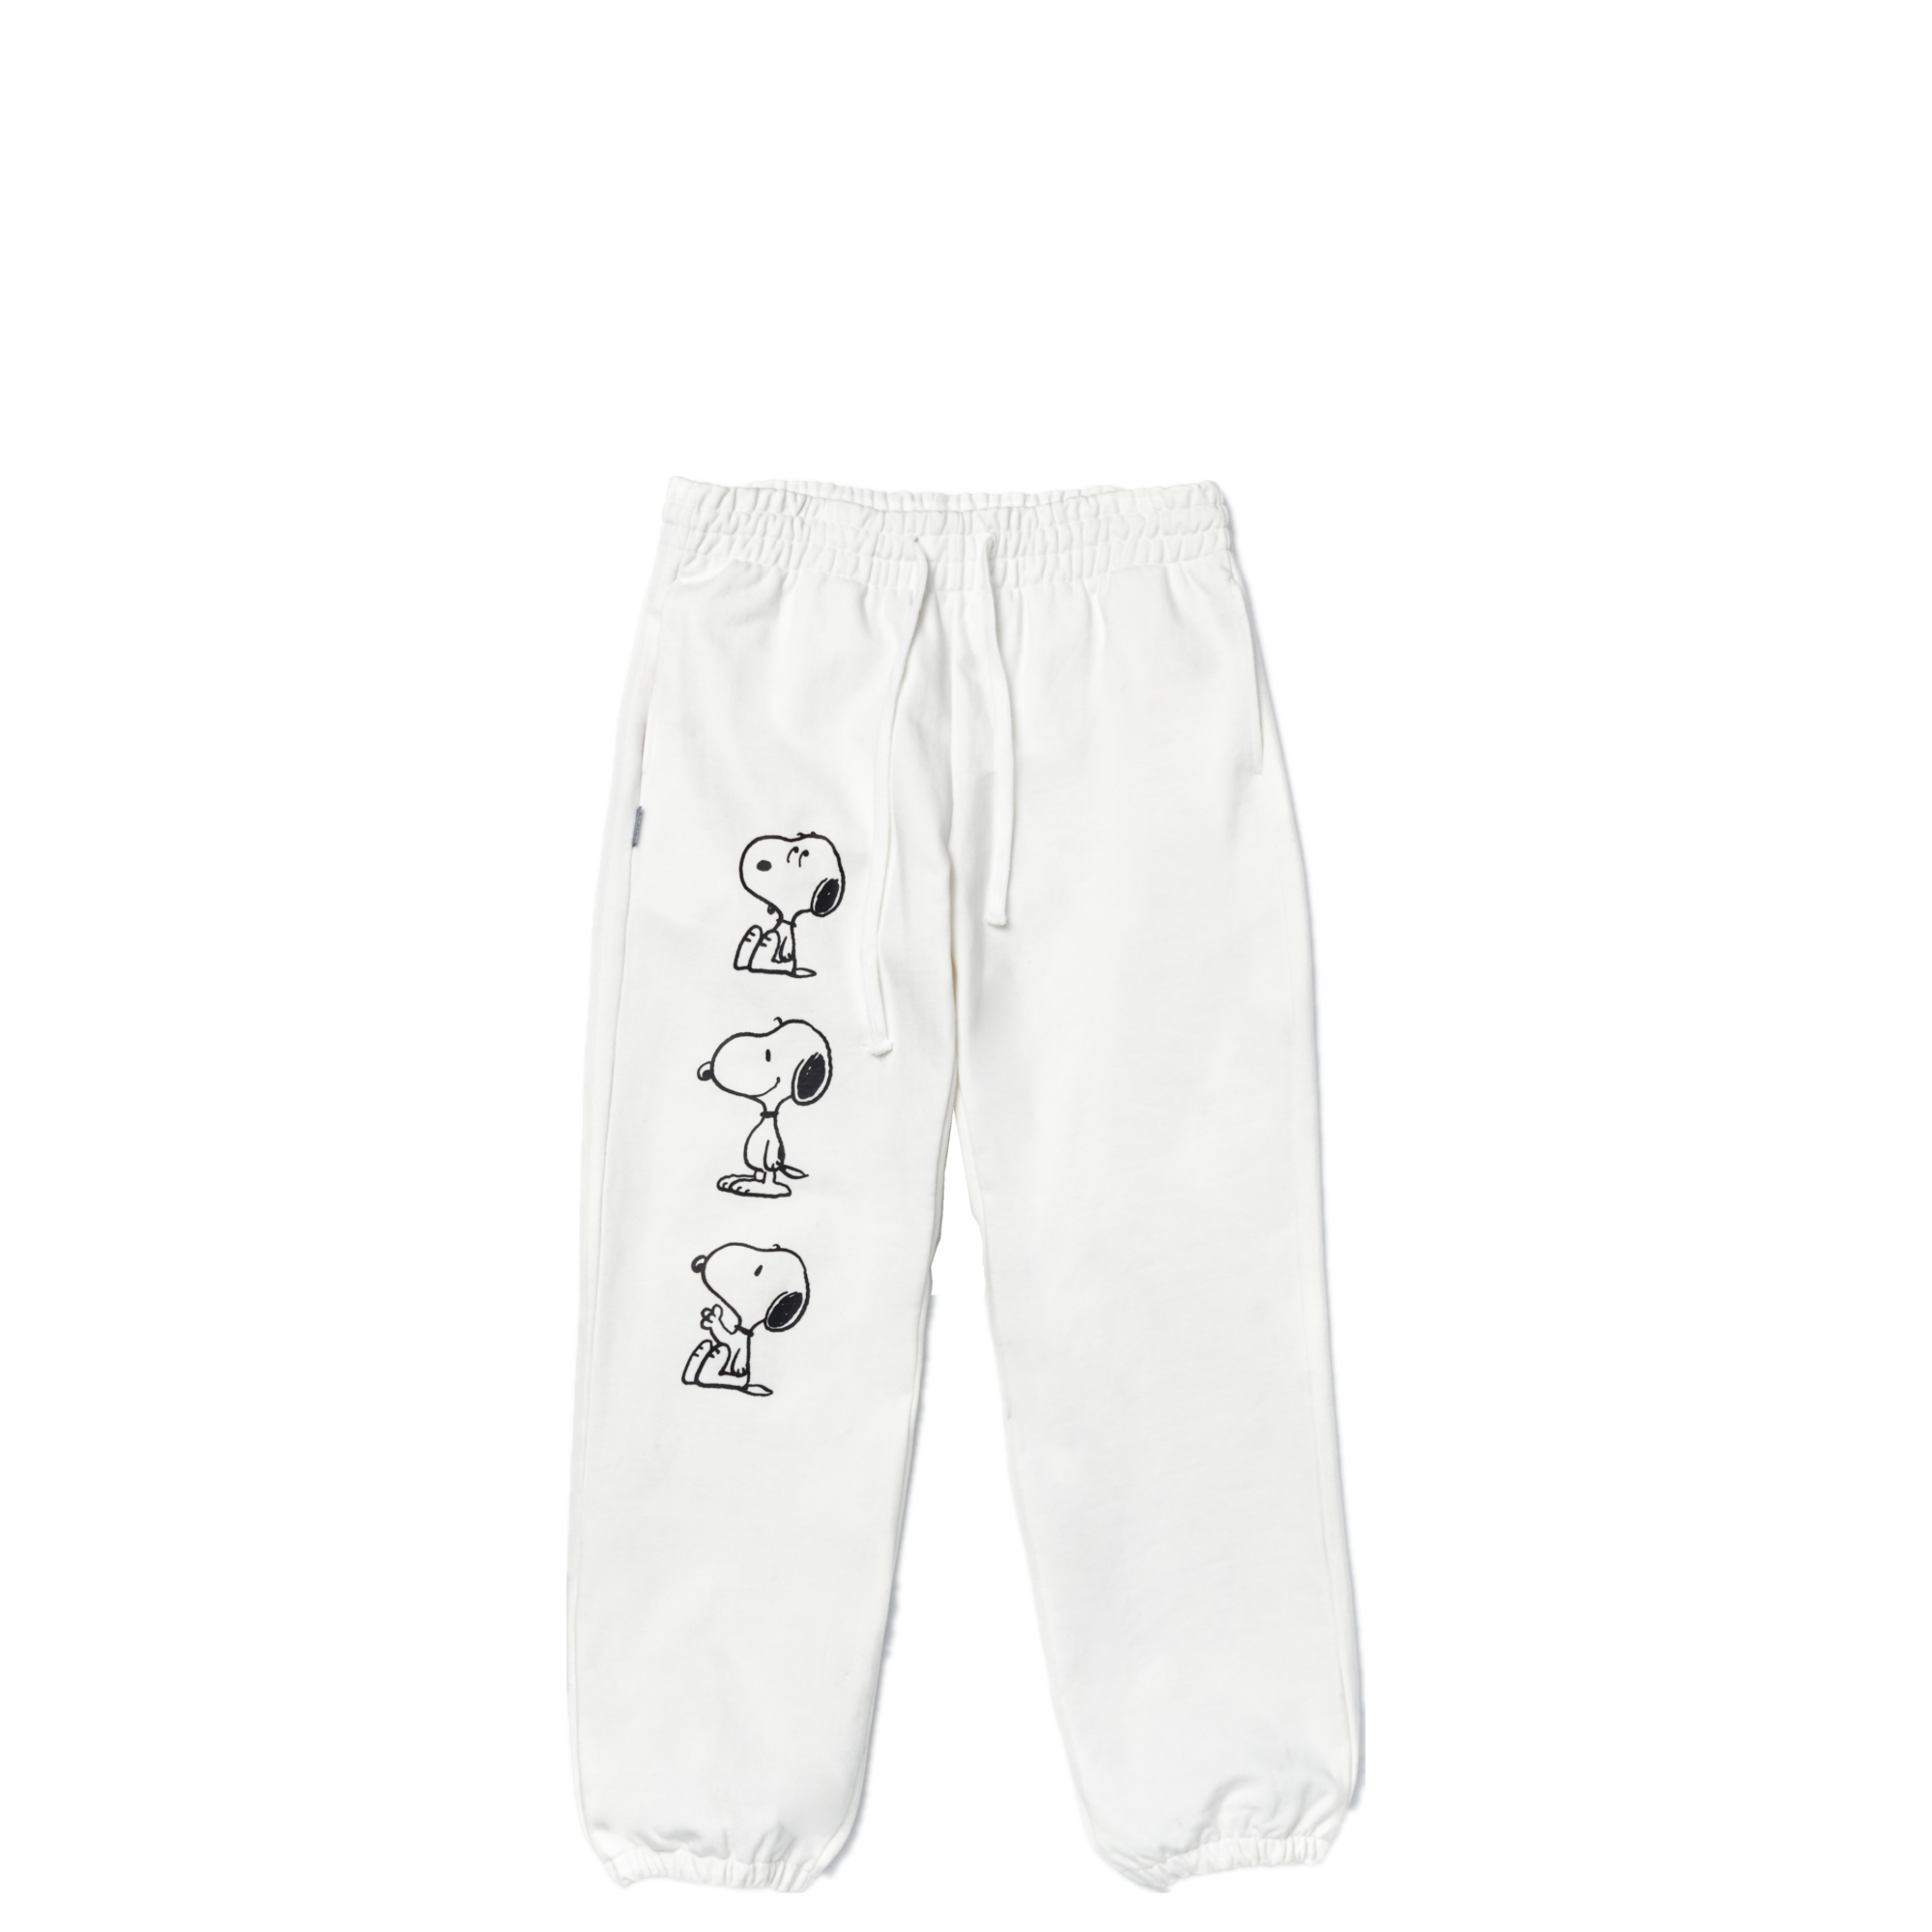 AGE X Snoopy 3 Bros Sweatpants WH/GN